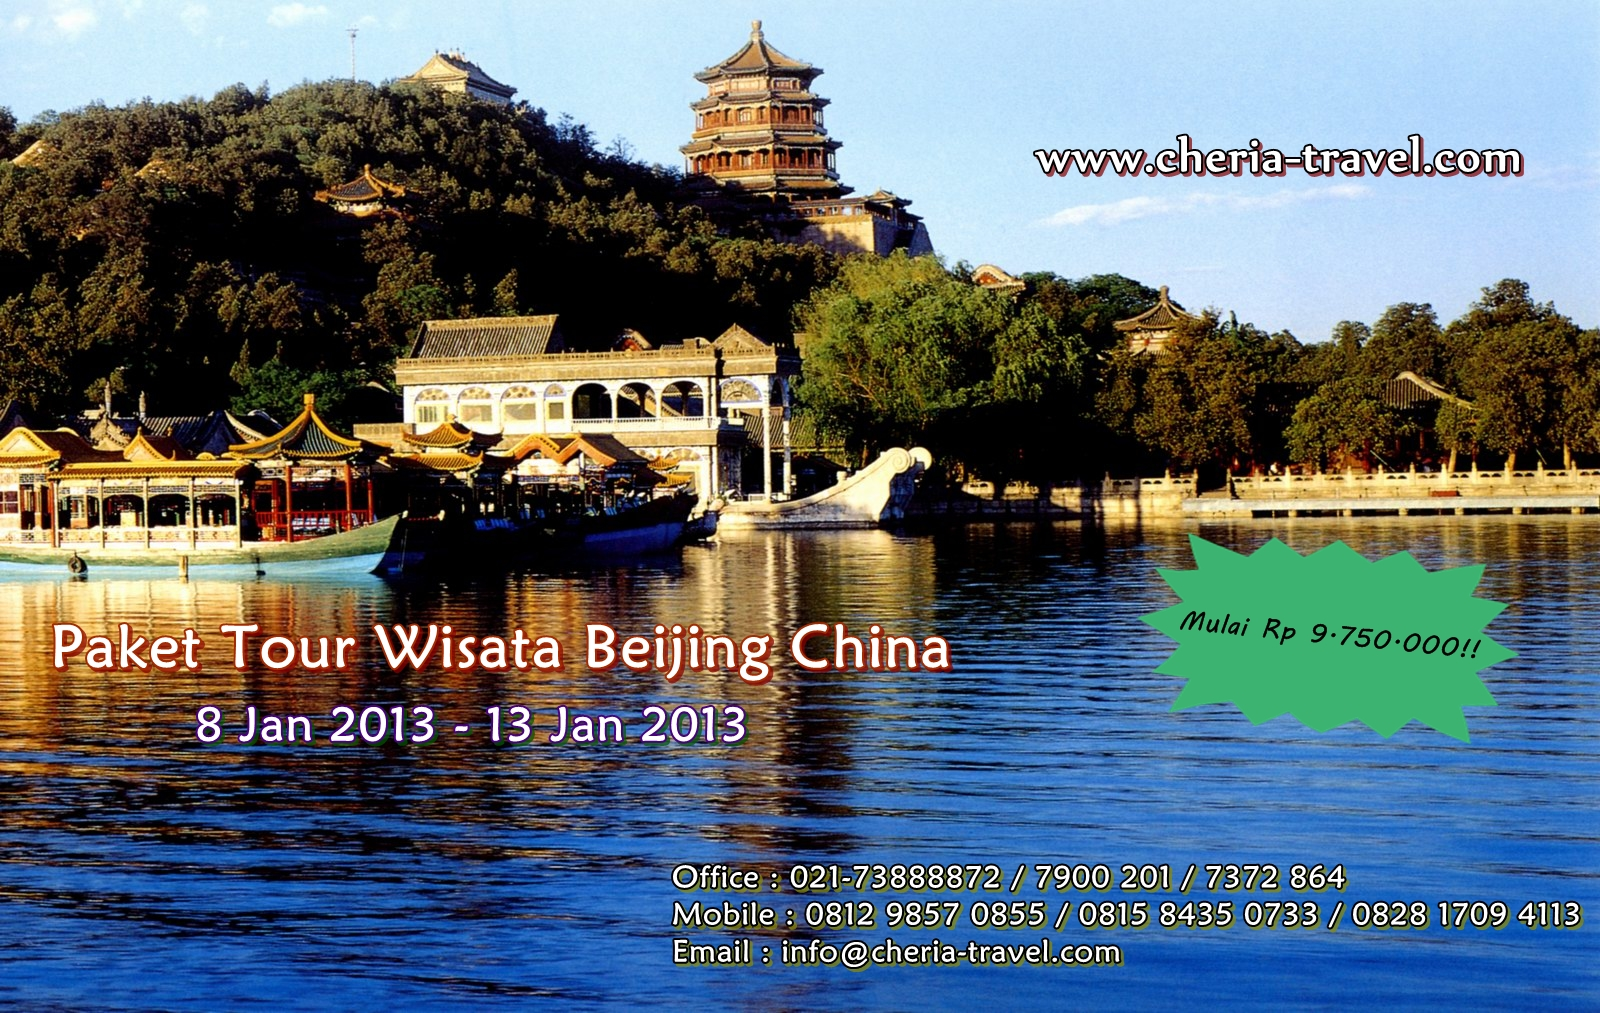 paket tour wisata beijing china, paket tour wisata beijing china 2013, wisata beijing china 2013, paket tour beijing 2013, tour wisata beijing 2013